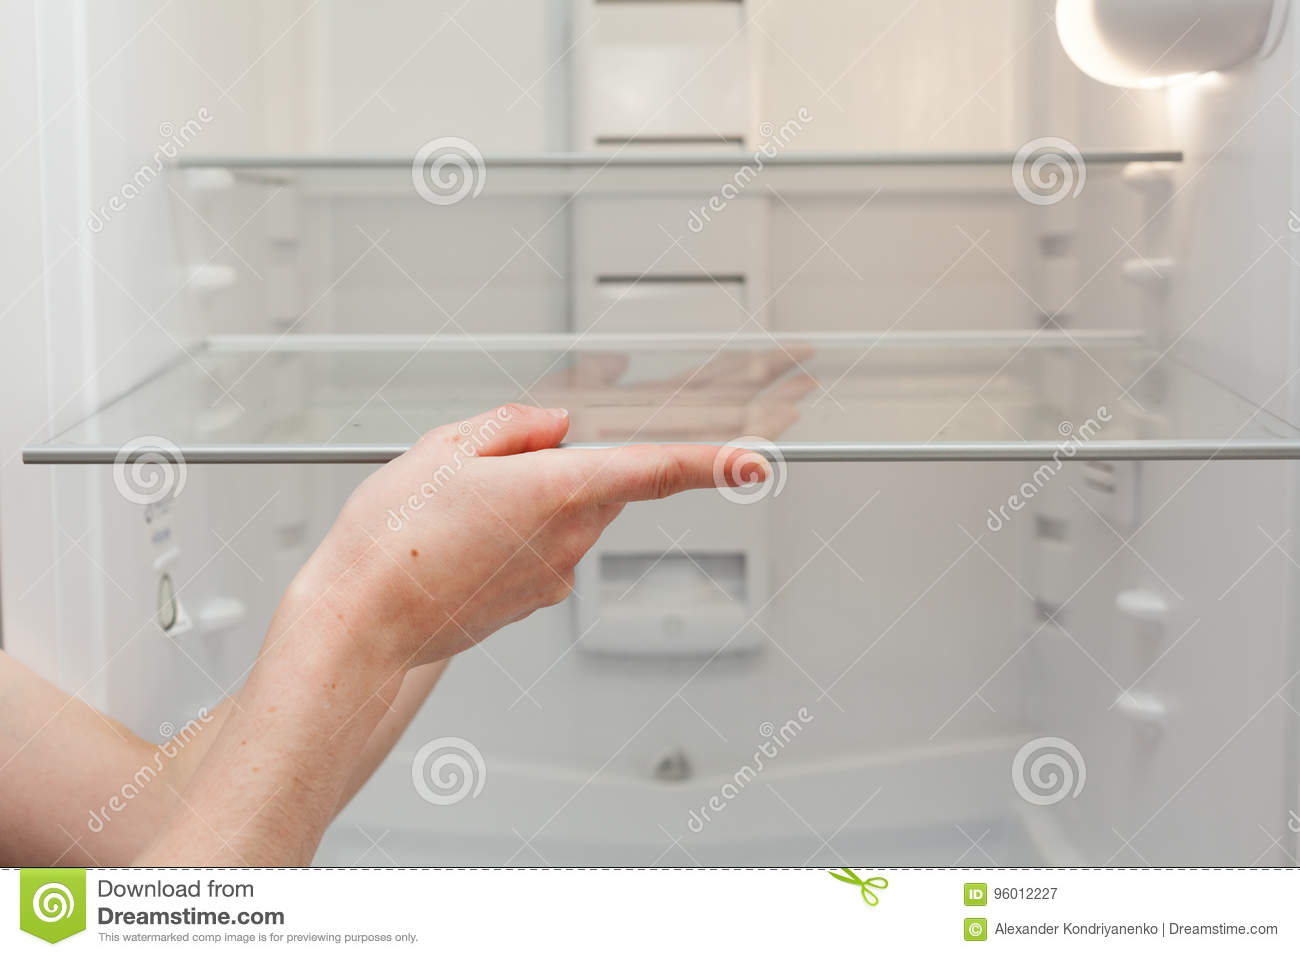 Installing new, clean shelves in an empty washed refrigerator. Young woman cleaning refrigerator